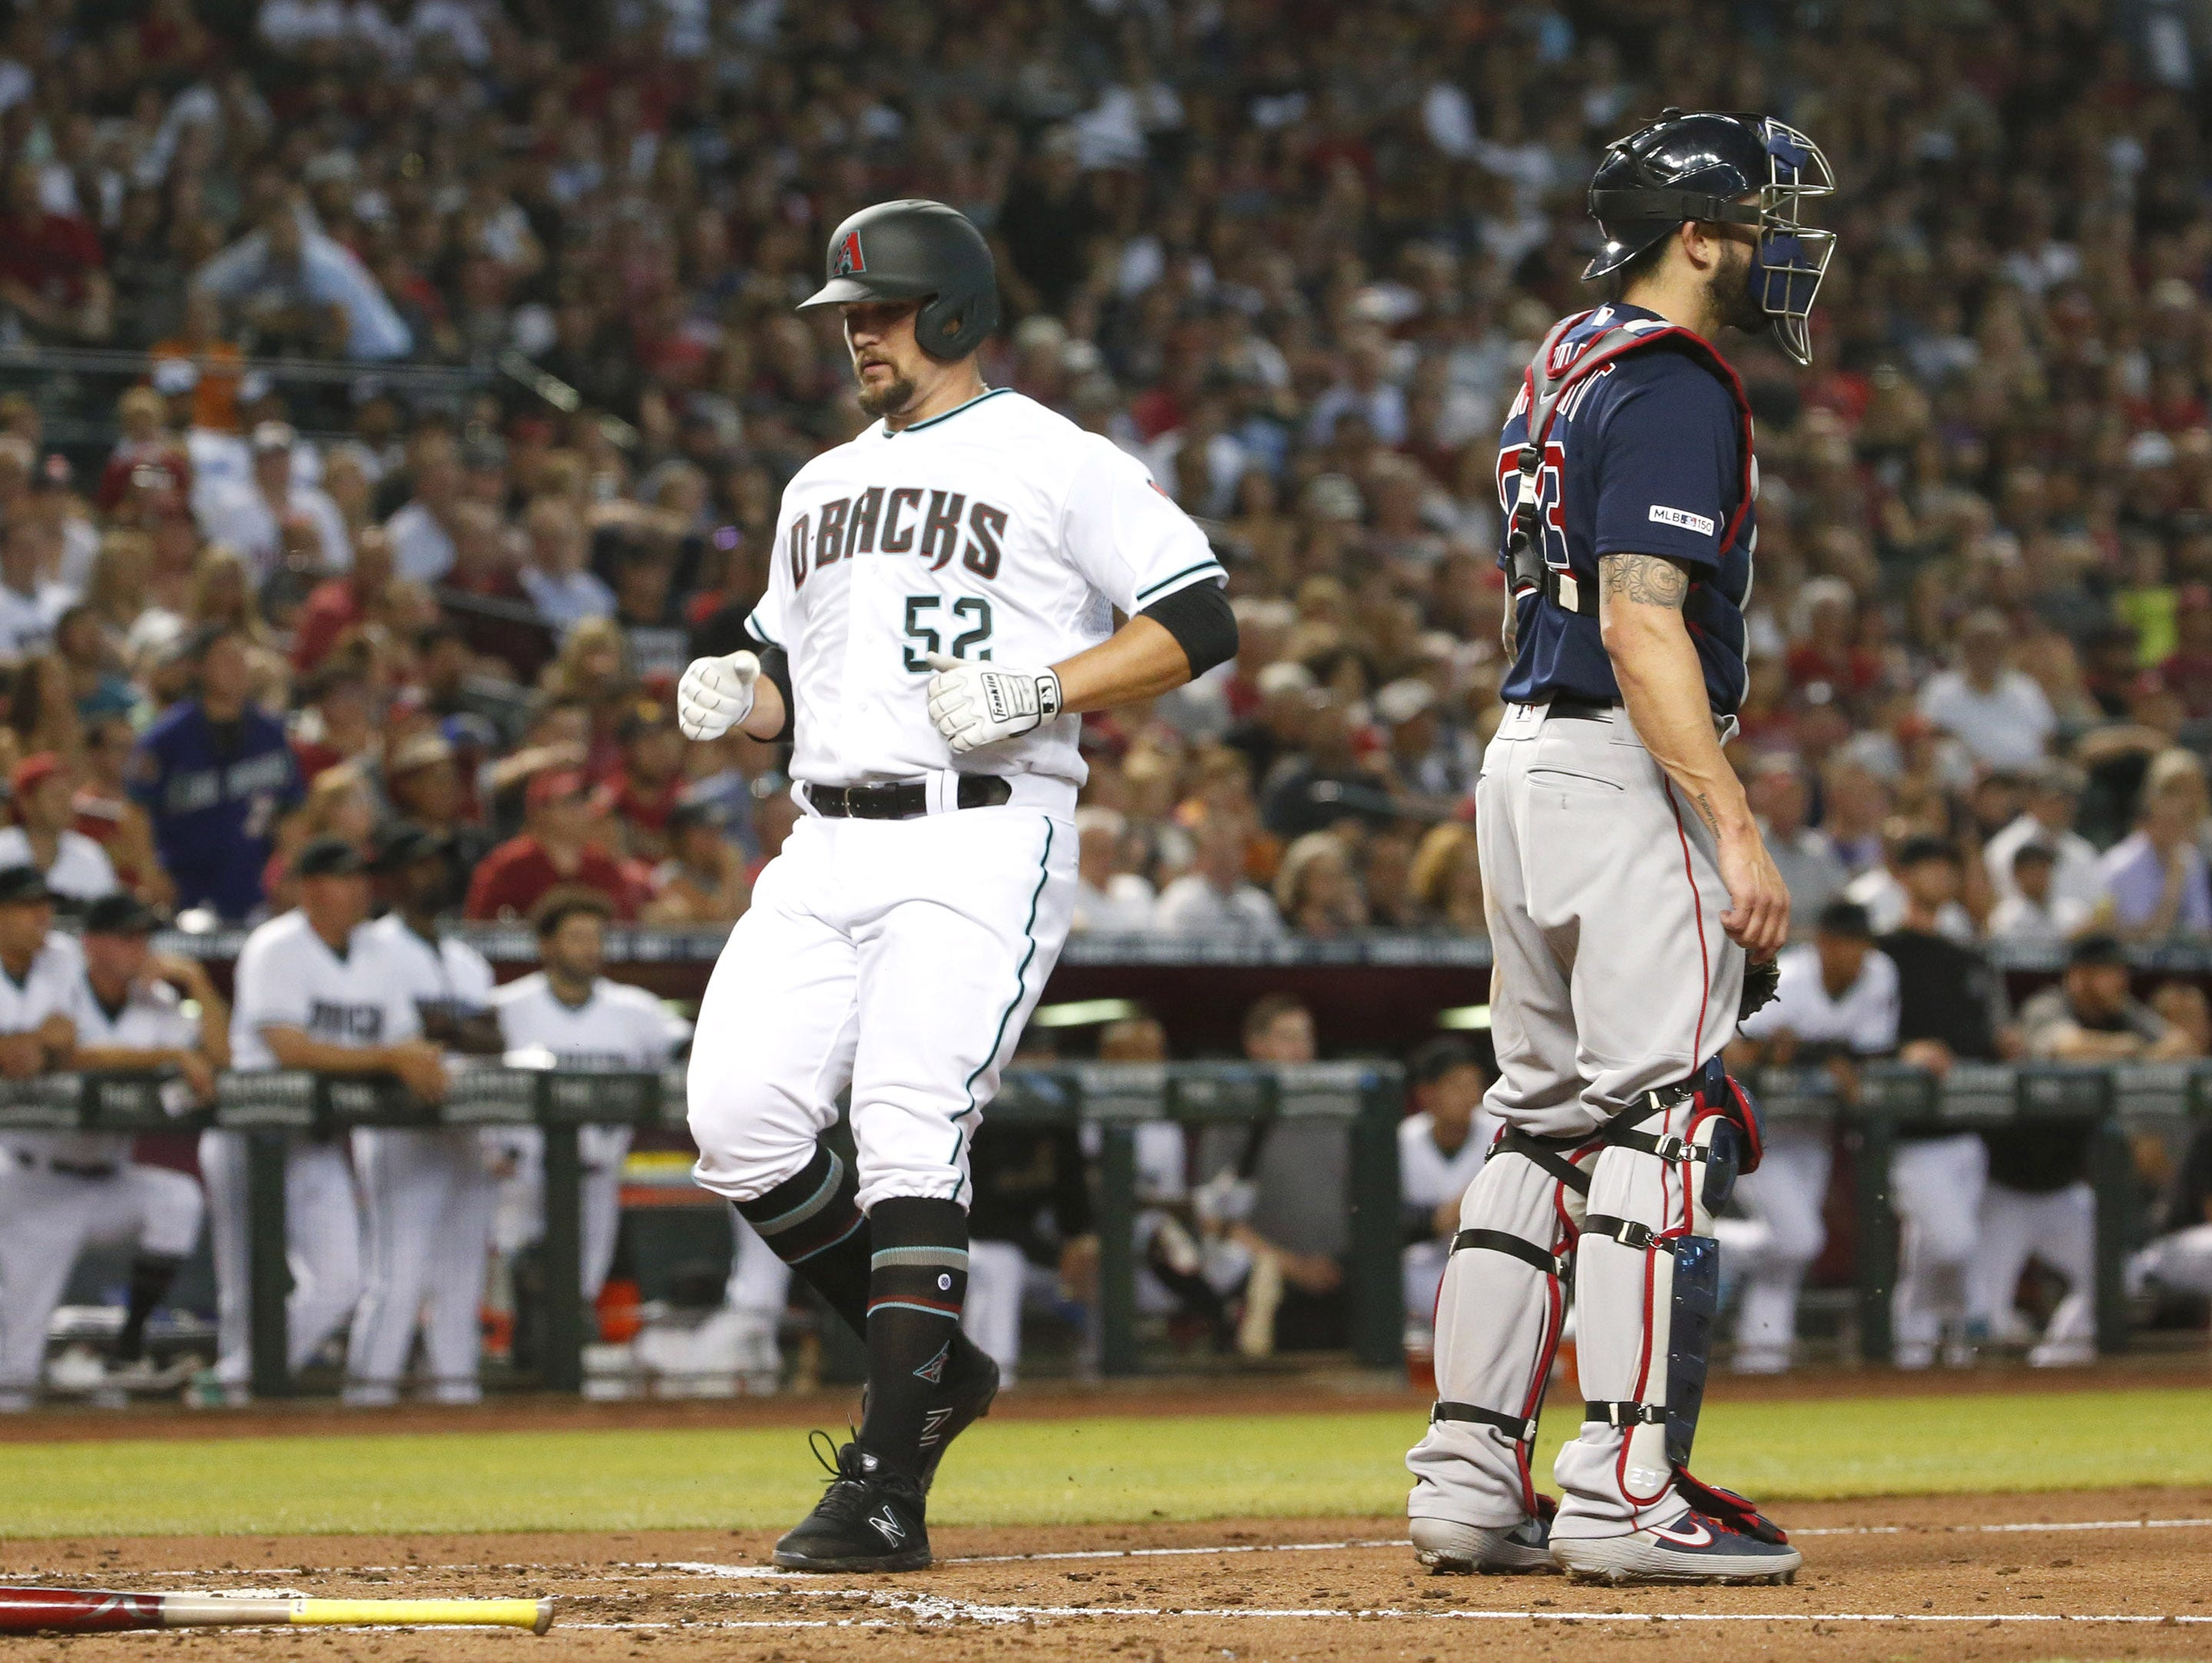 Arizona Diamondbacks starting pitcher Zack Godley (52) scores a run during the fourth inning of Opening Day against the Boston Red Sox at Chase Field in Phoenix on April 5.